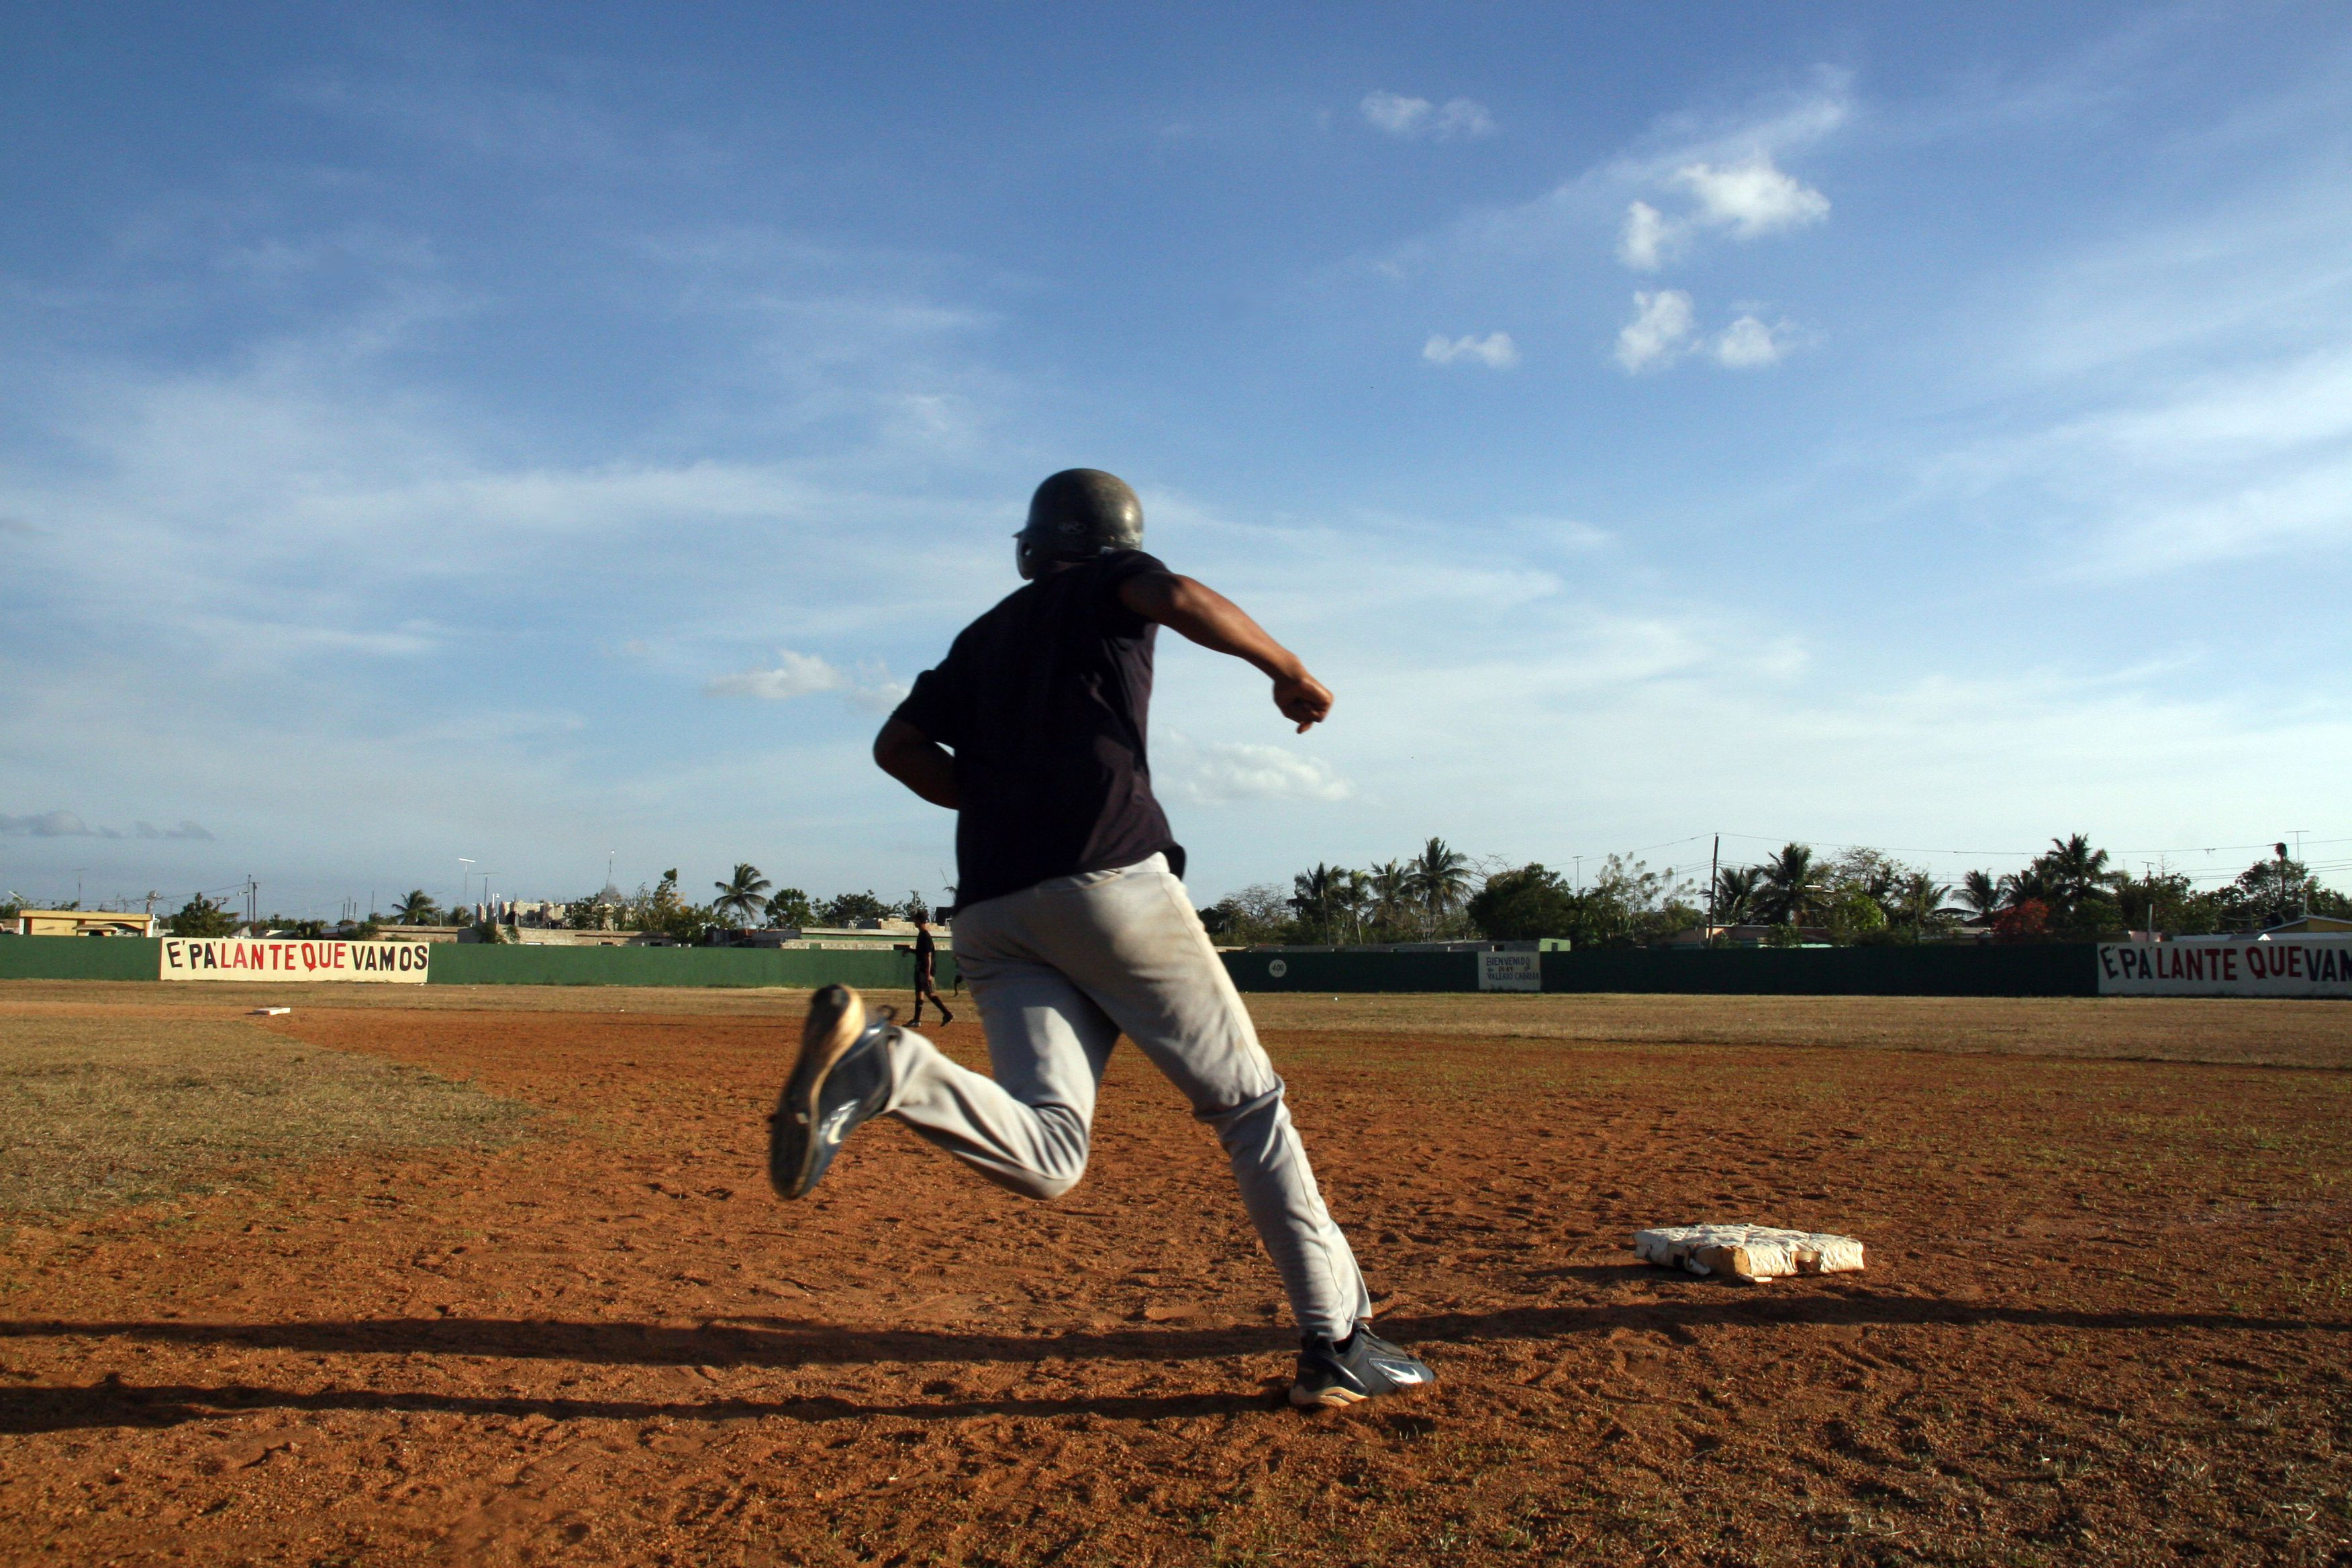 An image from Ballplayer: Pelotero